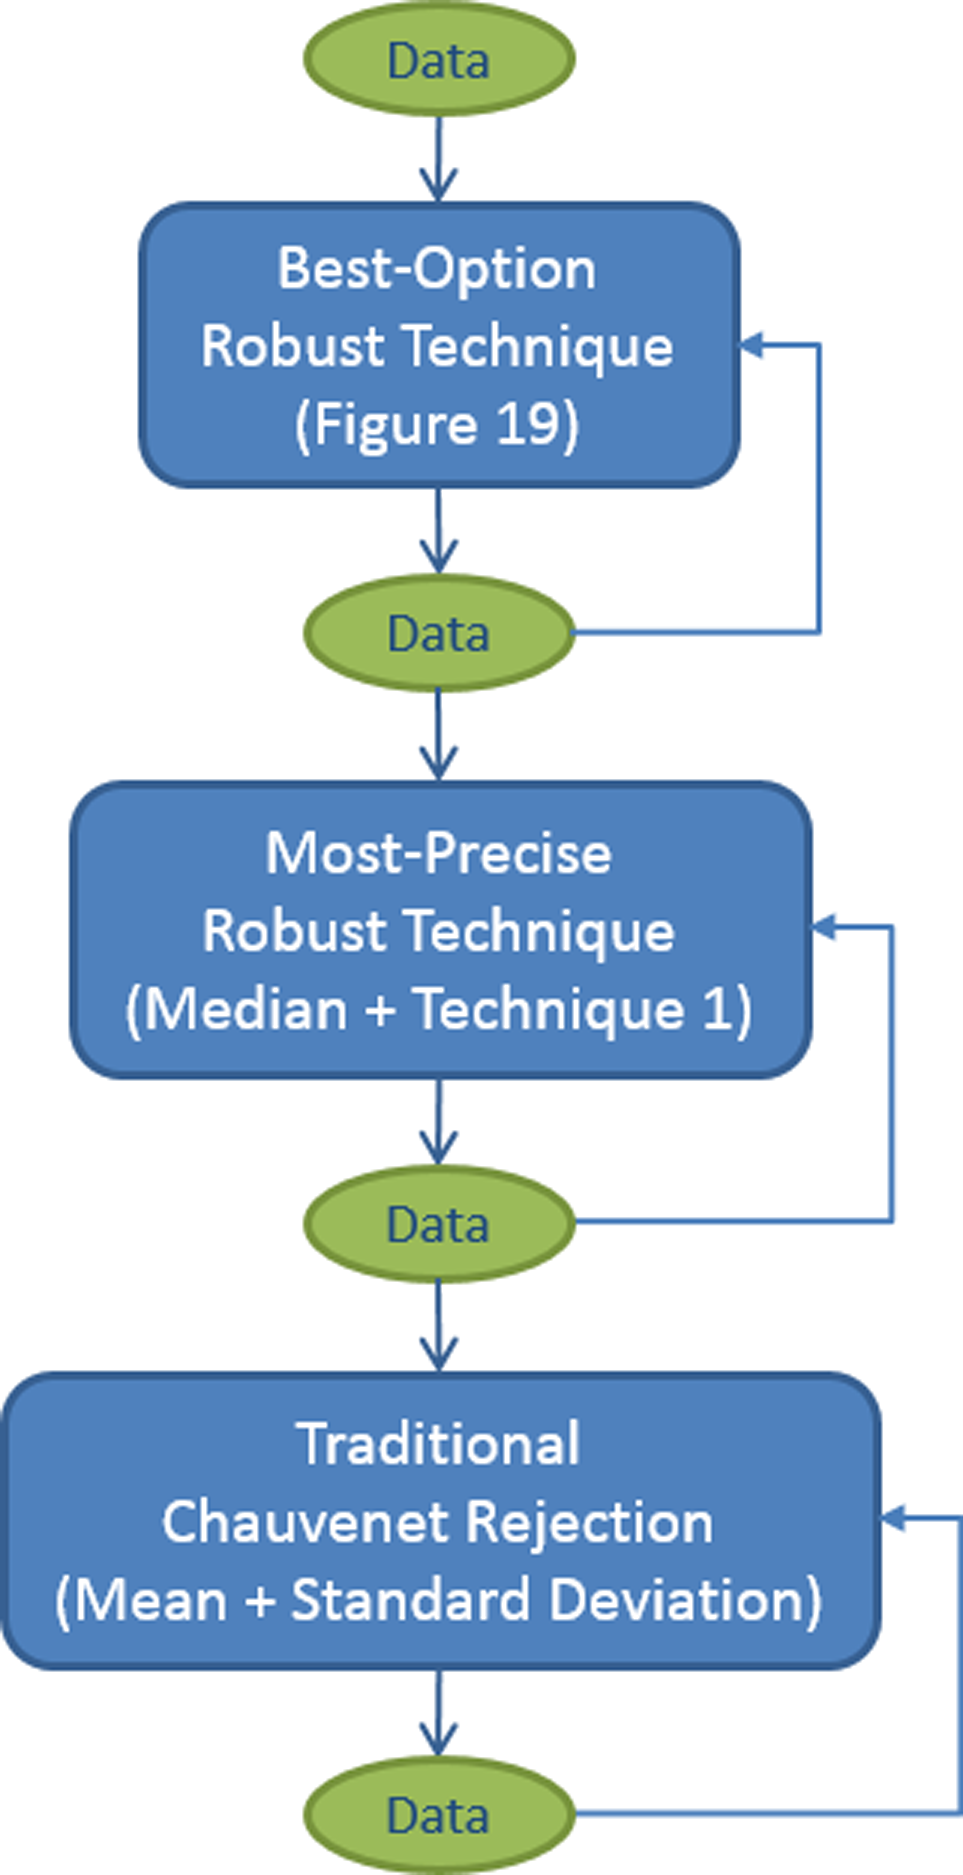 Flowchart of our algorithm, without bulk pre-rejection (see Figure 30). The most discrepant outlier is rejected each iteration, and one iterates until no outliers remain before moving on to the next step. mu and sigma (or sigma_- and sigma_+, depending on whether the uncontaminated distribution is symmetric or asymmetric, and on the contaminant type; Figure 19) are recalculated after each iteration, and the latter is multiplied by the appropriate correction factor (see Figure 29) before being used to reject the next outlier. mu and sigma (or sigma_- and sigma_+) may be calculated in different ways in different steps, but how they are used to reject outliers depends on whether the uncontaminated distribution is symmetric or asymmetric, and on the contaminant type, and consequently does not change from step to step (Figure 19).